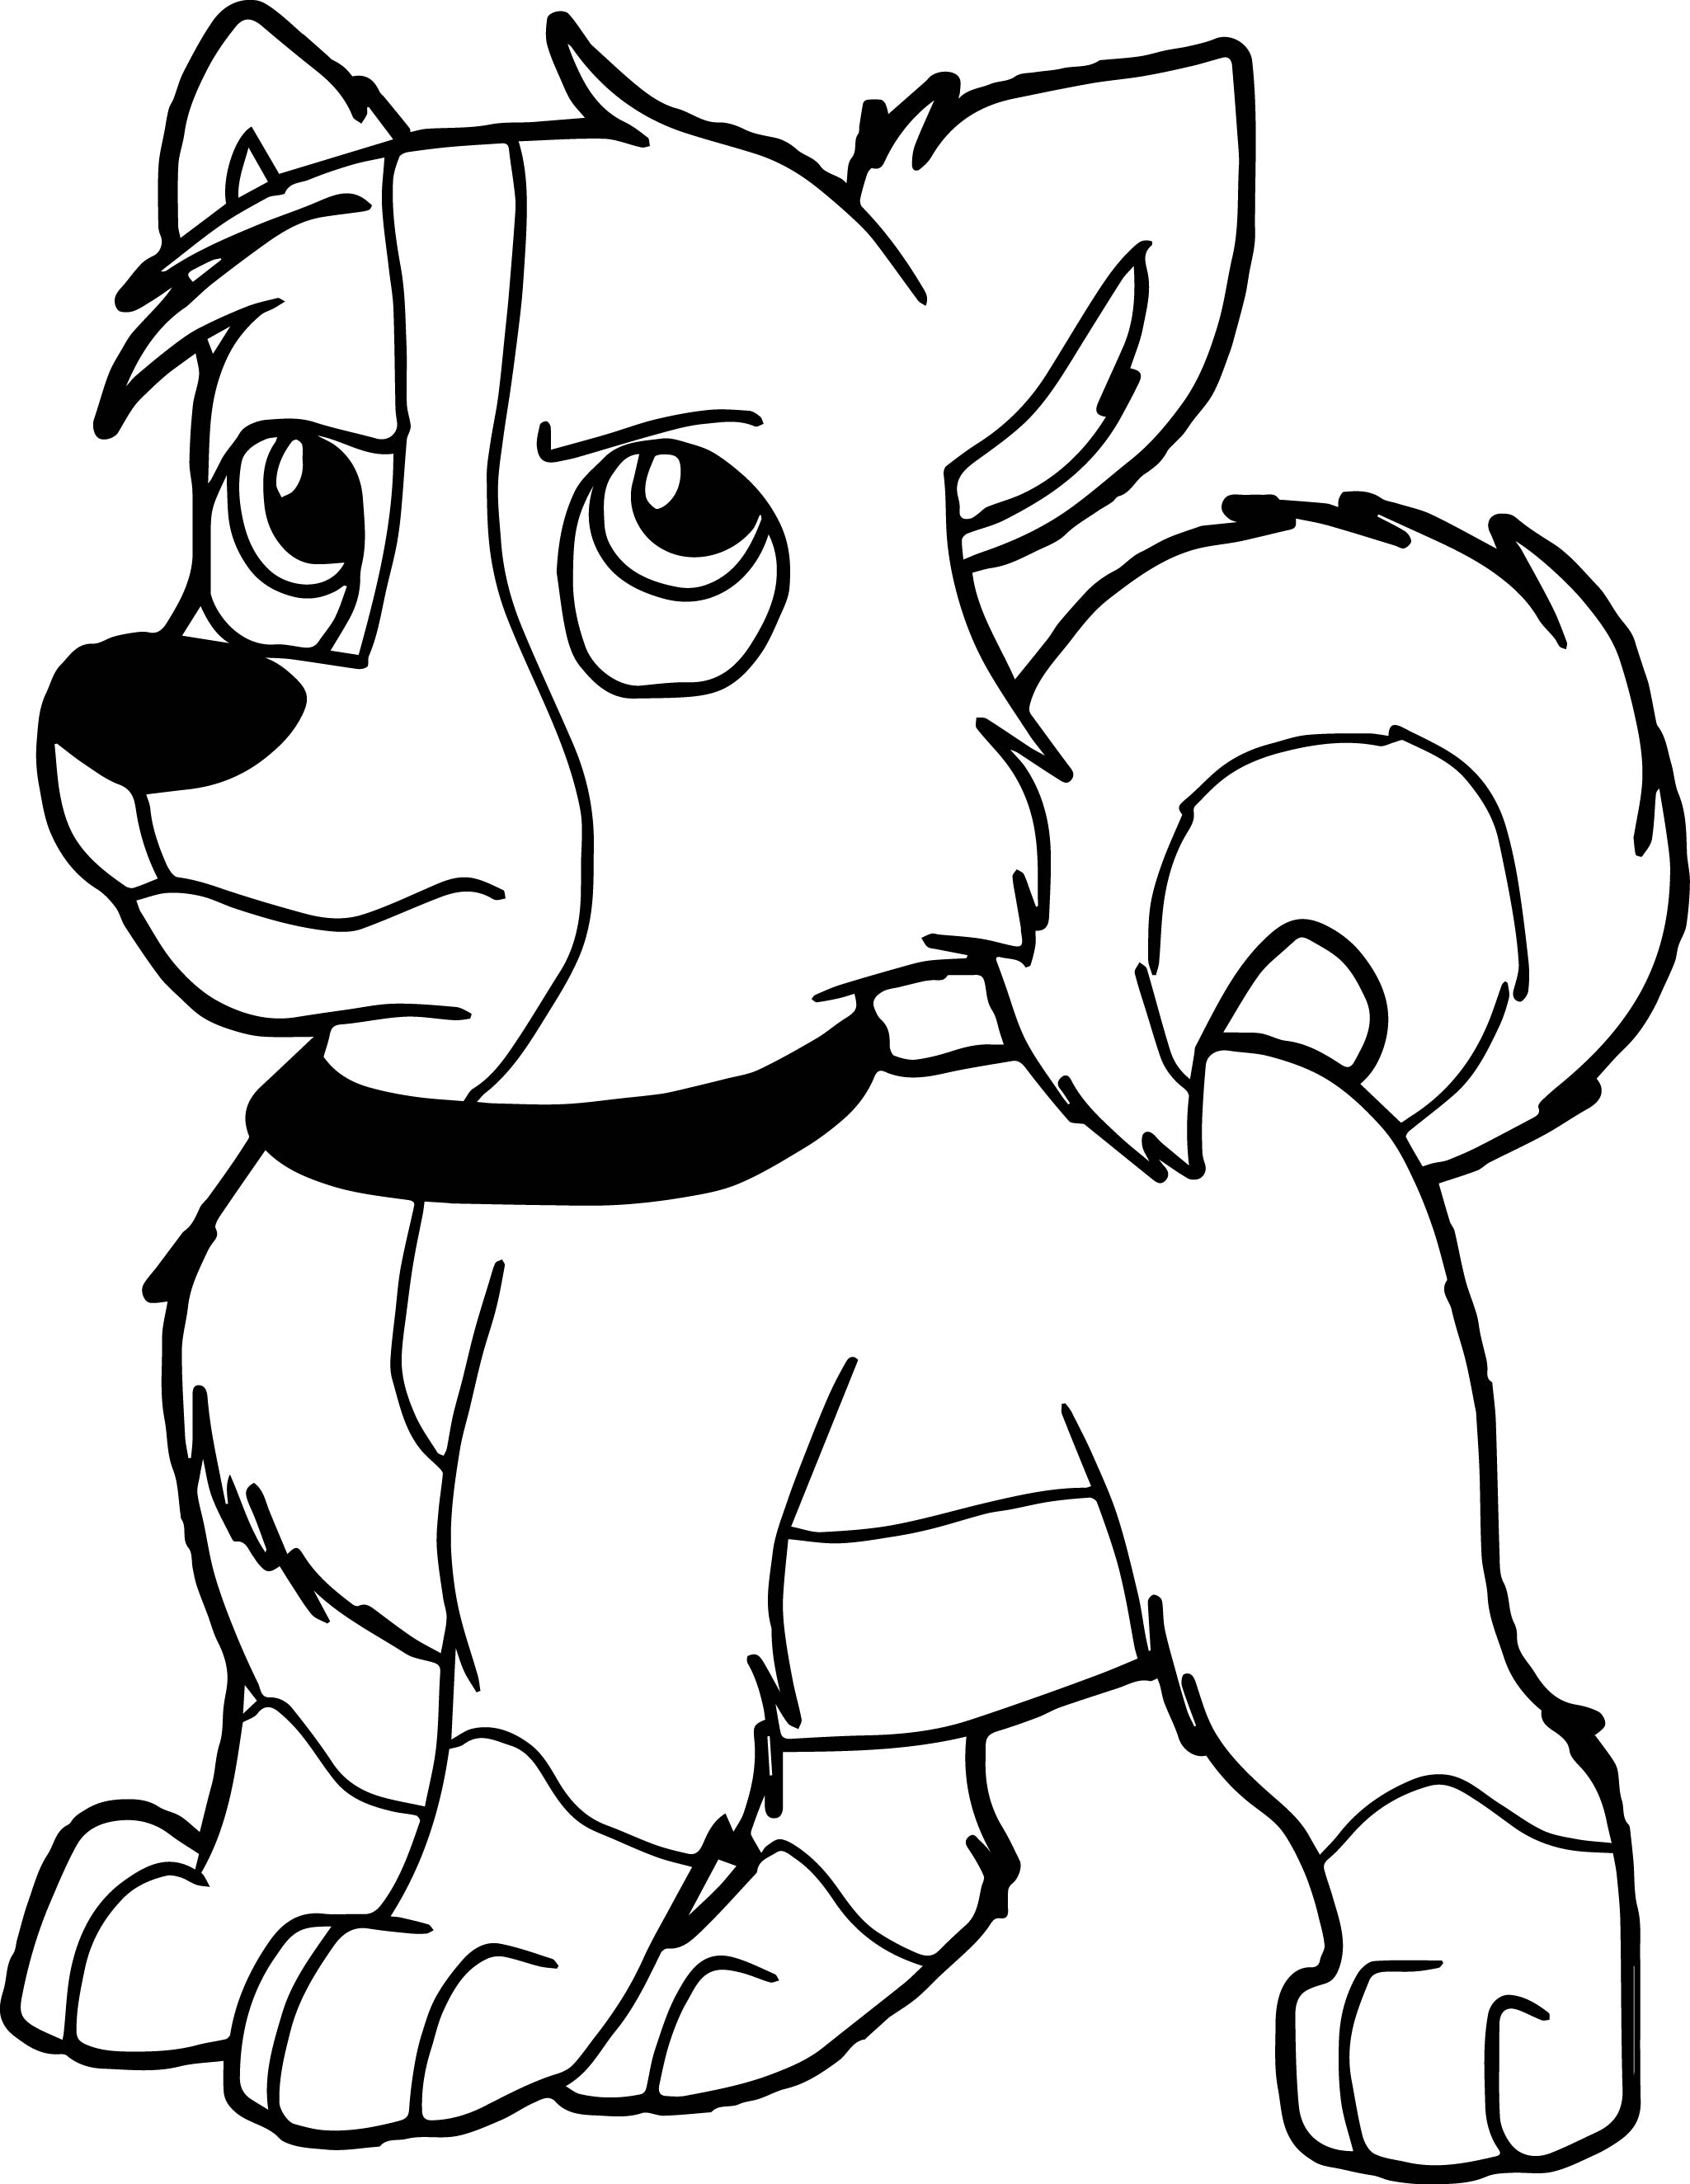 blizzard dog coloring page wecoloringpage